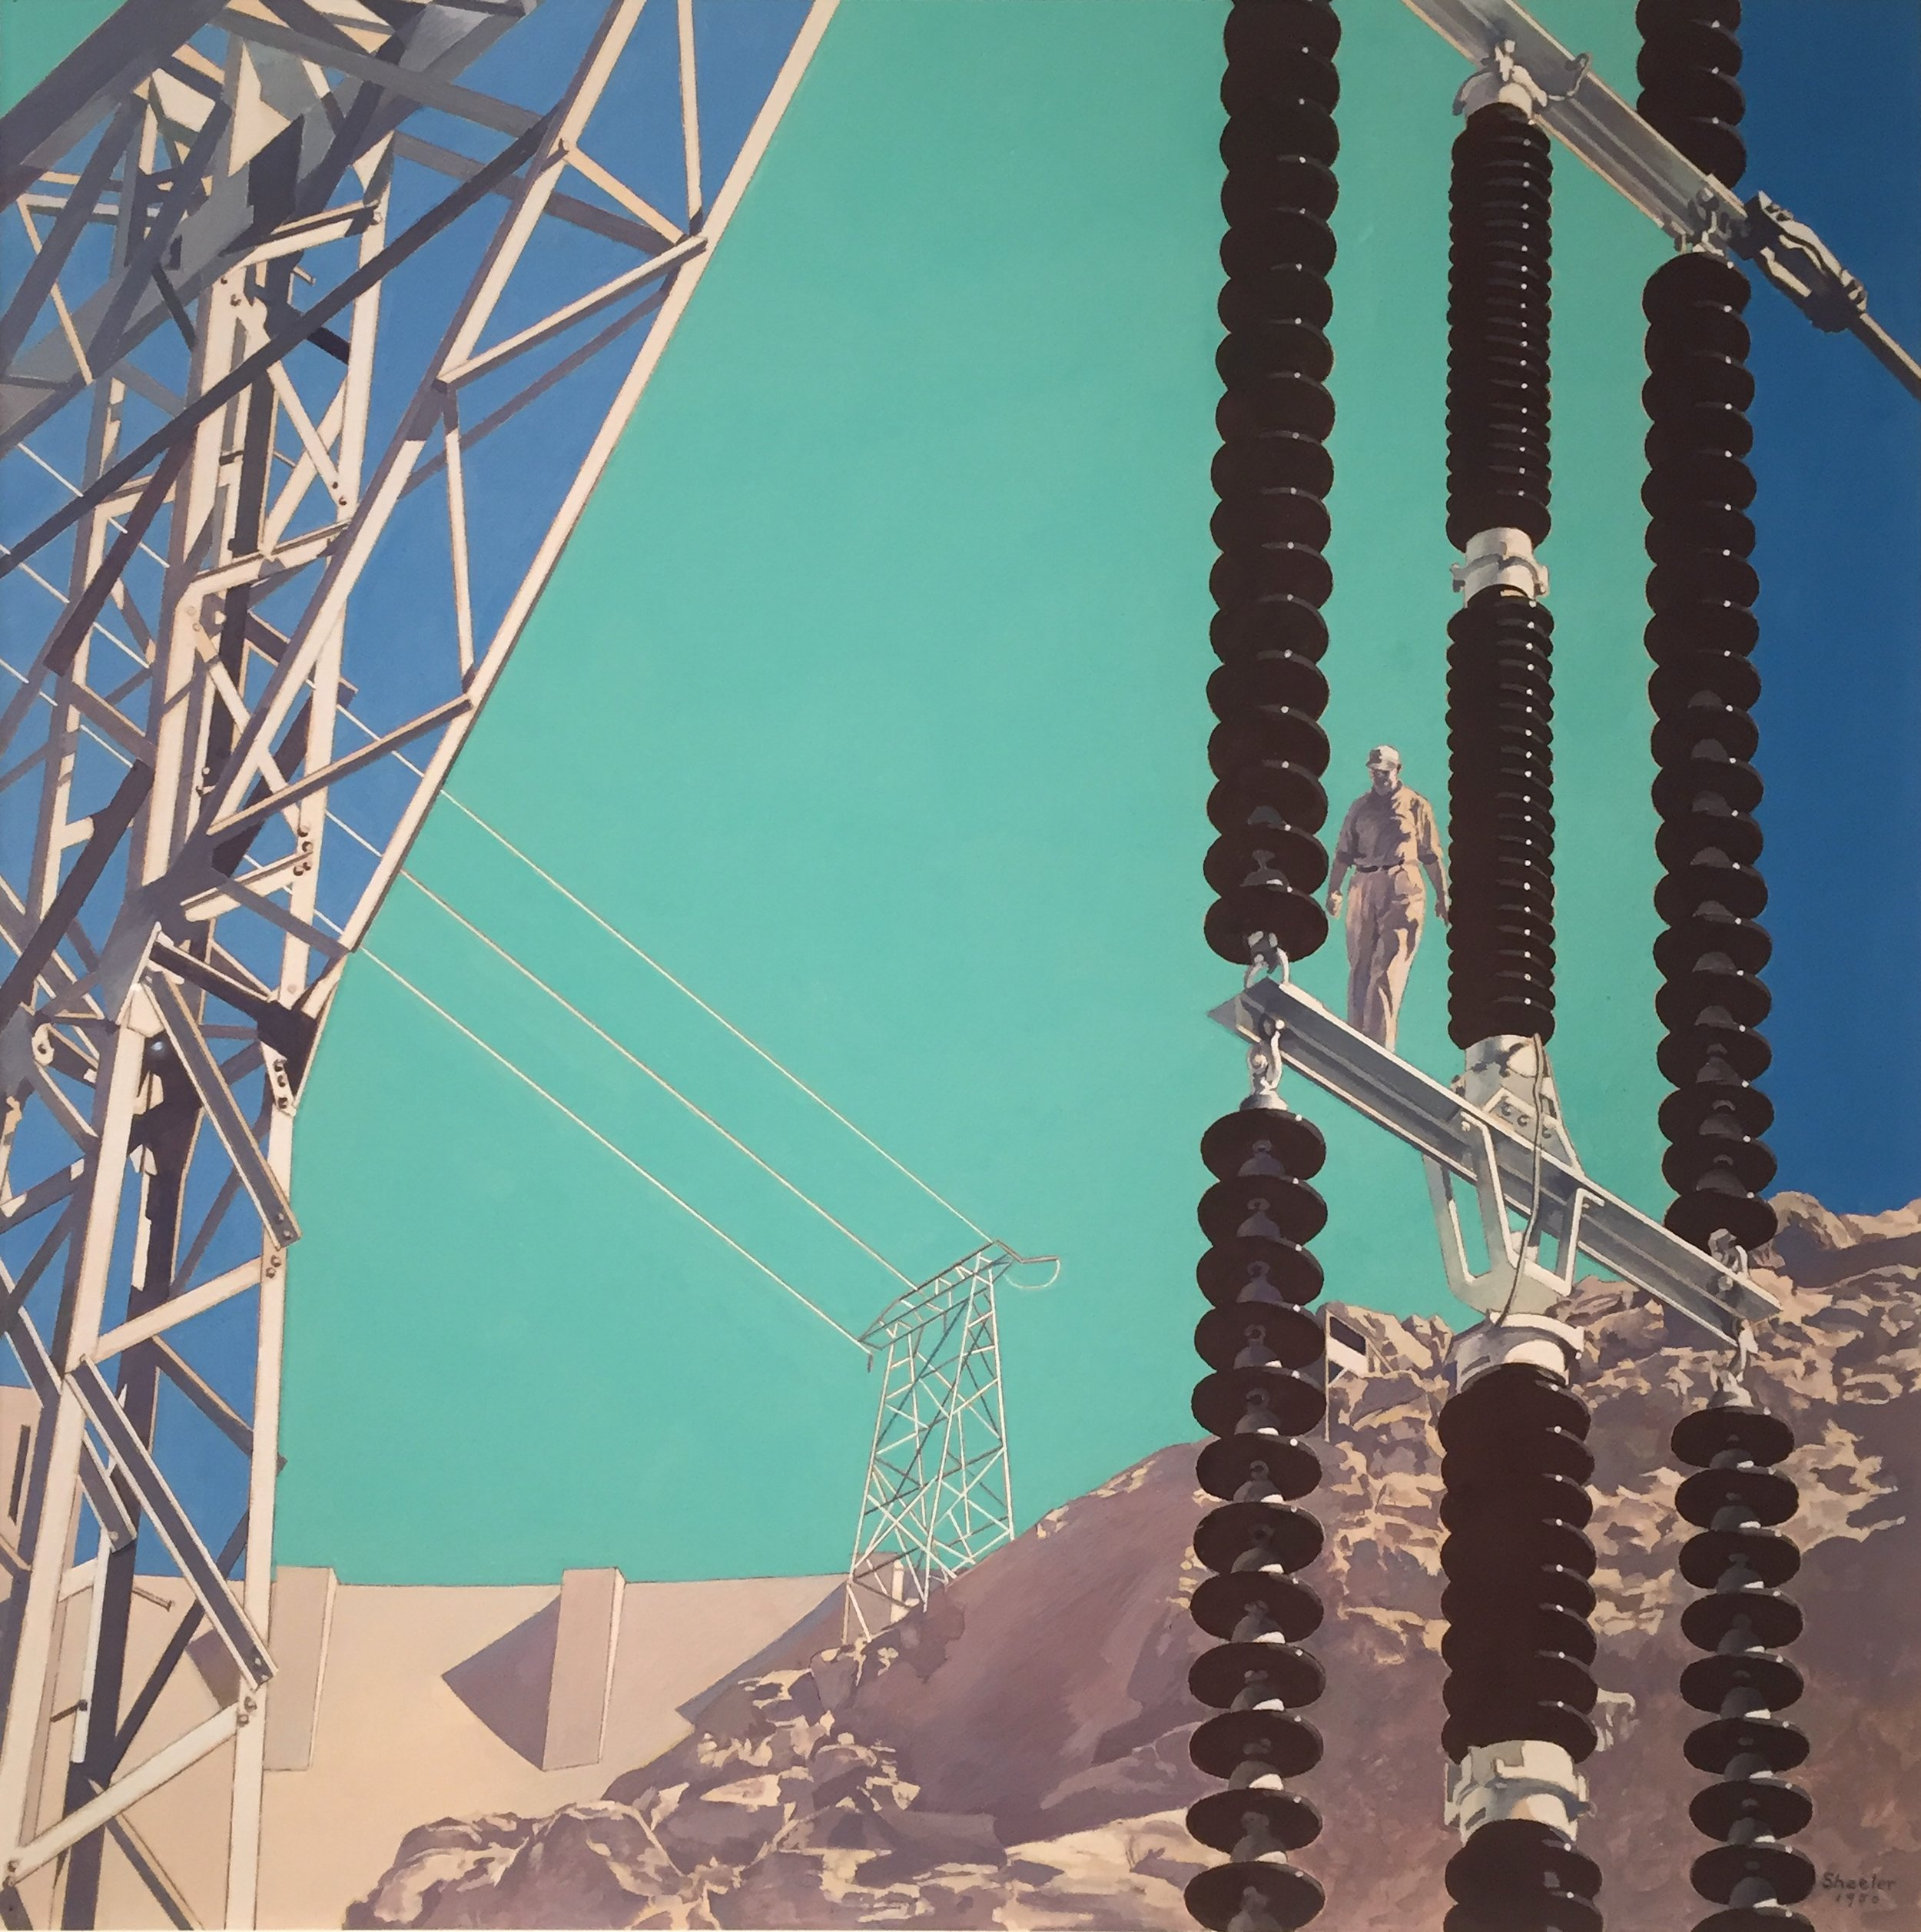 Image of Hoover Dam with man and sky of three different blues